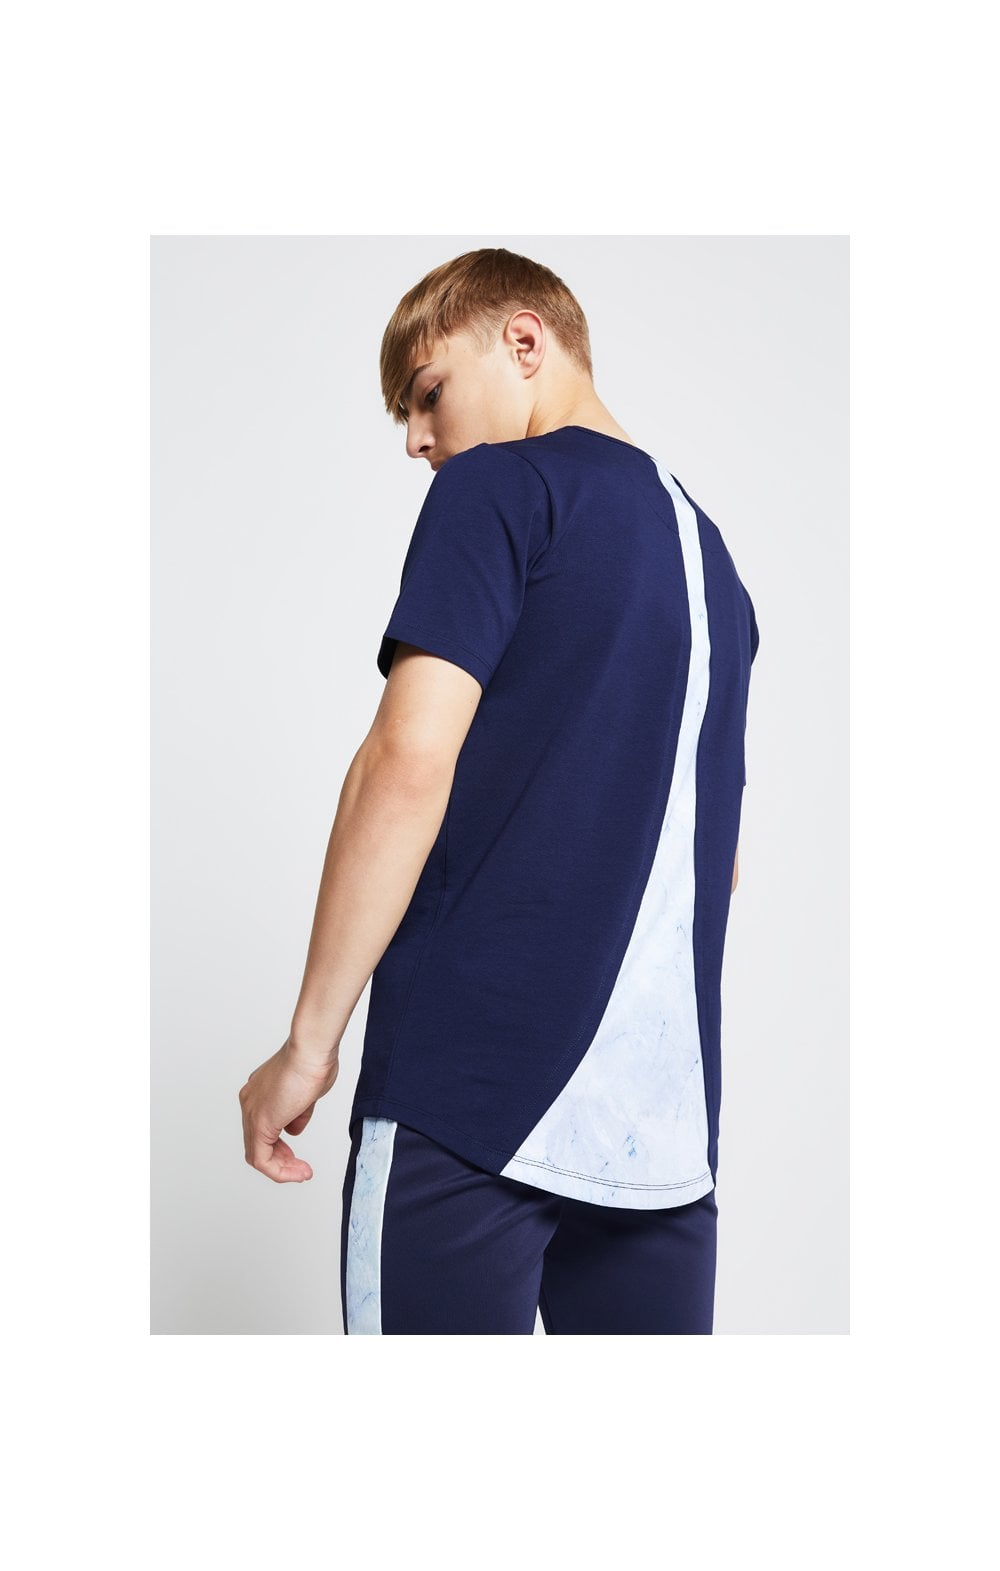 Illusive London Marble Racer Back Tee – Navy & Marble (1)